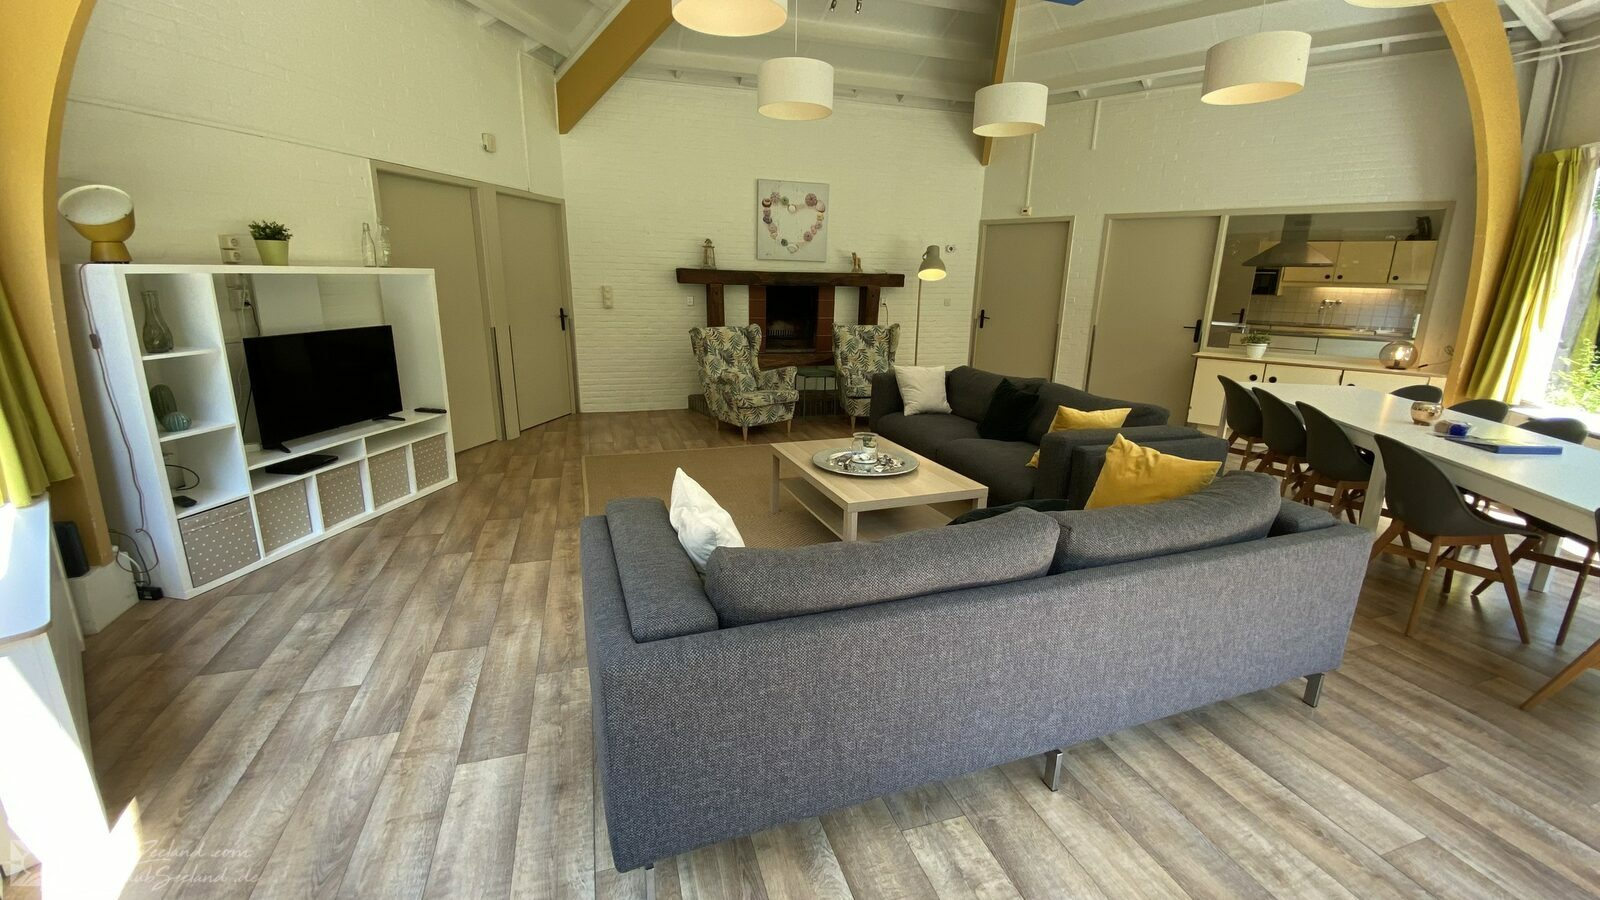 VZ1013 Detached holiday home in Oostkapelle